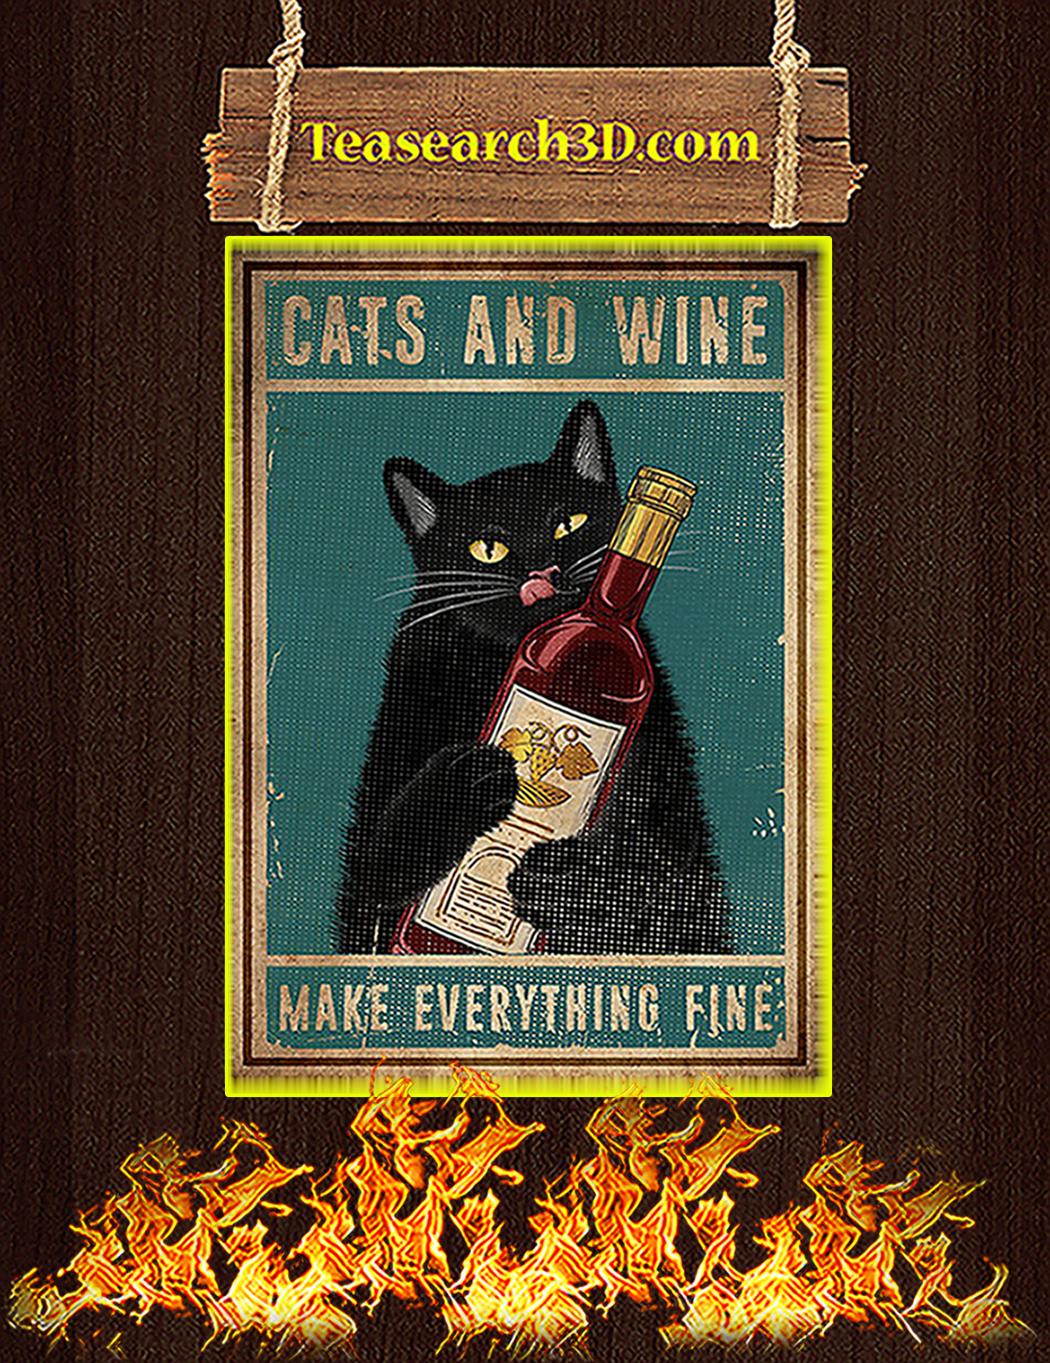 Cats and wine make everything fine poster A1